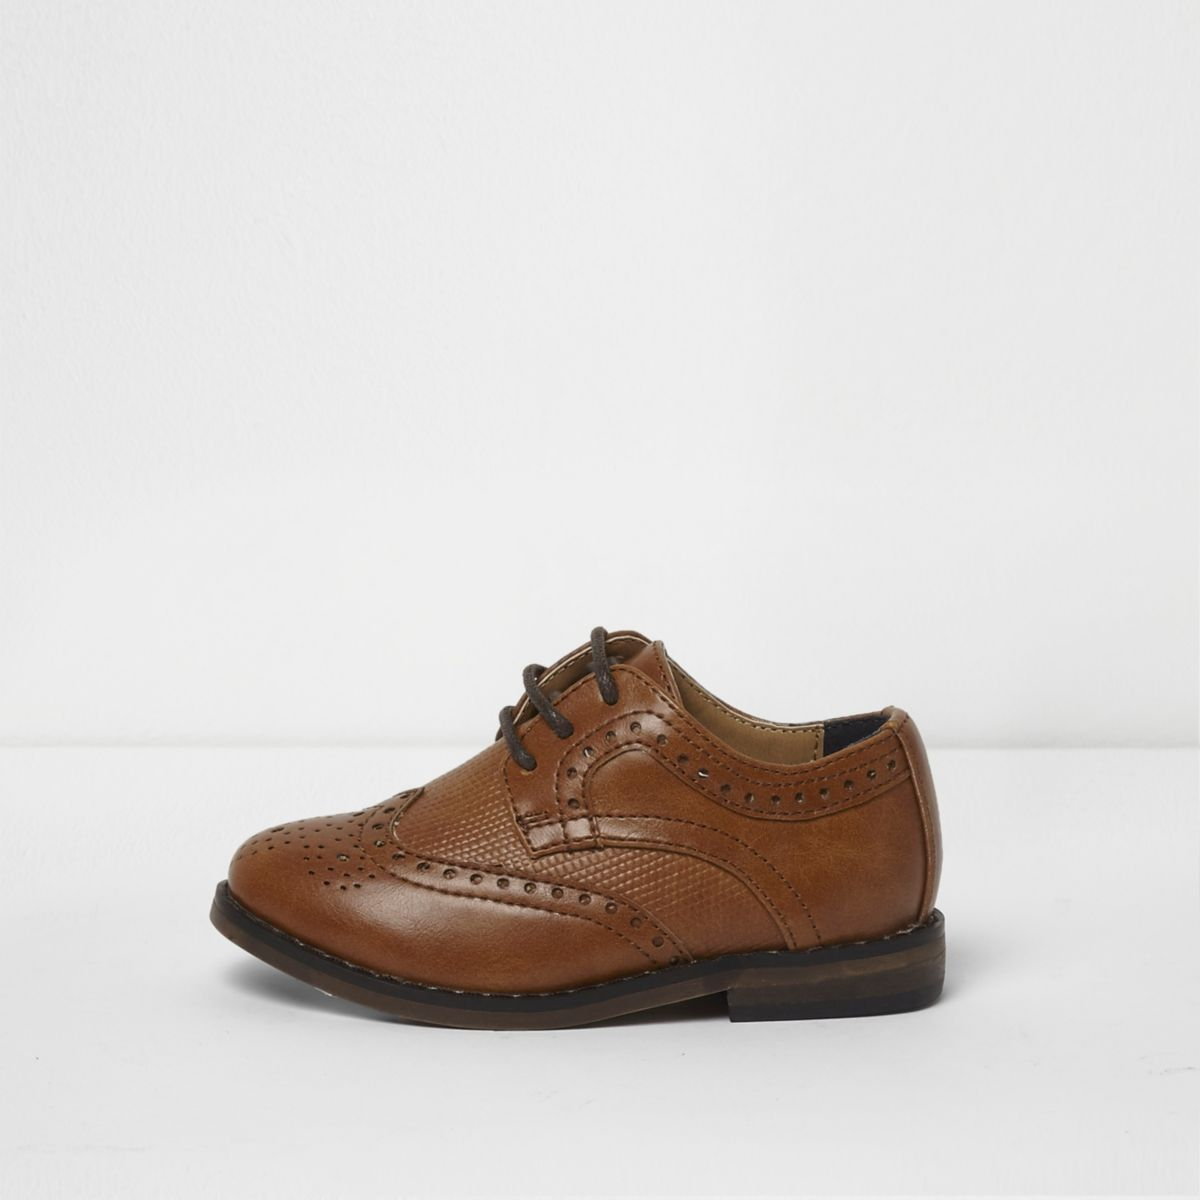 For a more traditional style of shoe, browse our range of classic brogues for boys and girls. A sturdy leather shoe or boot designed to be worn both every day and for a special occasion, opt for a traditional black or brown colour way, or add a contemporary spin with our .